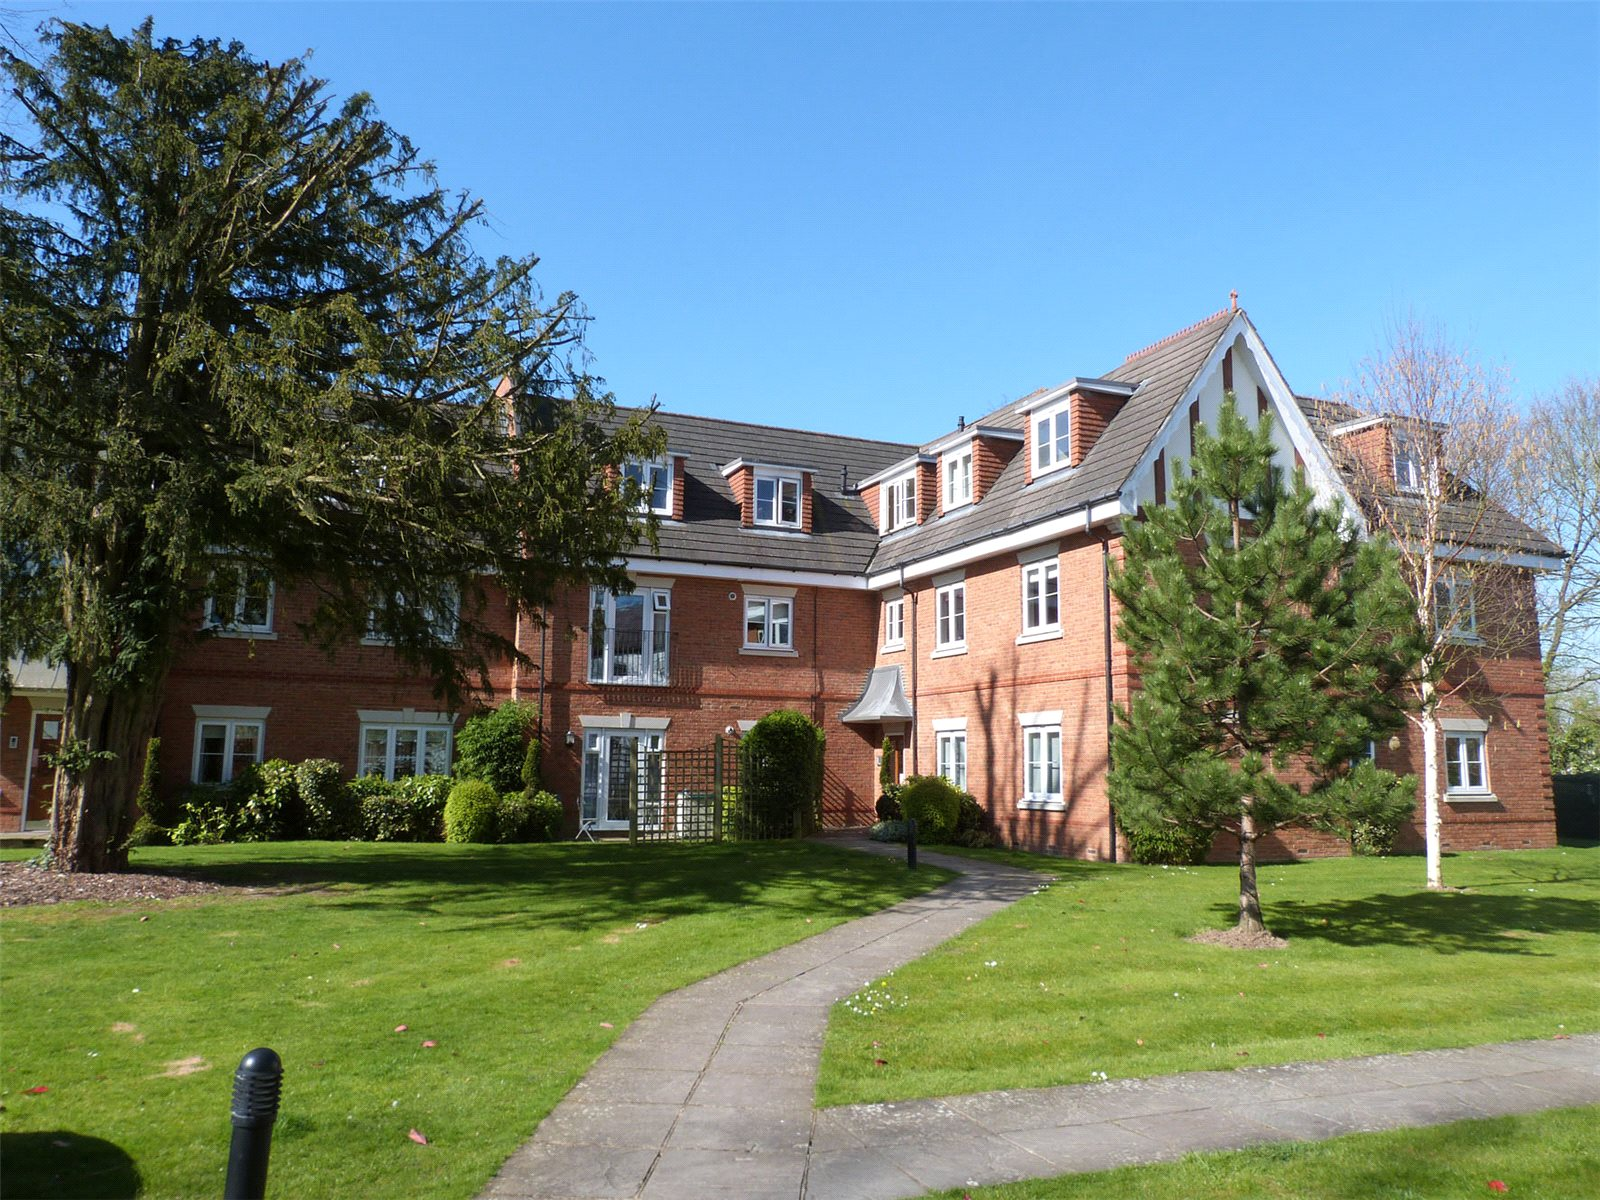 2 Bedrooms Apartment Flat for sale in Oxfordshire Place, Warfield, Berkshire, RG42